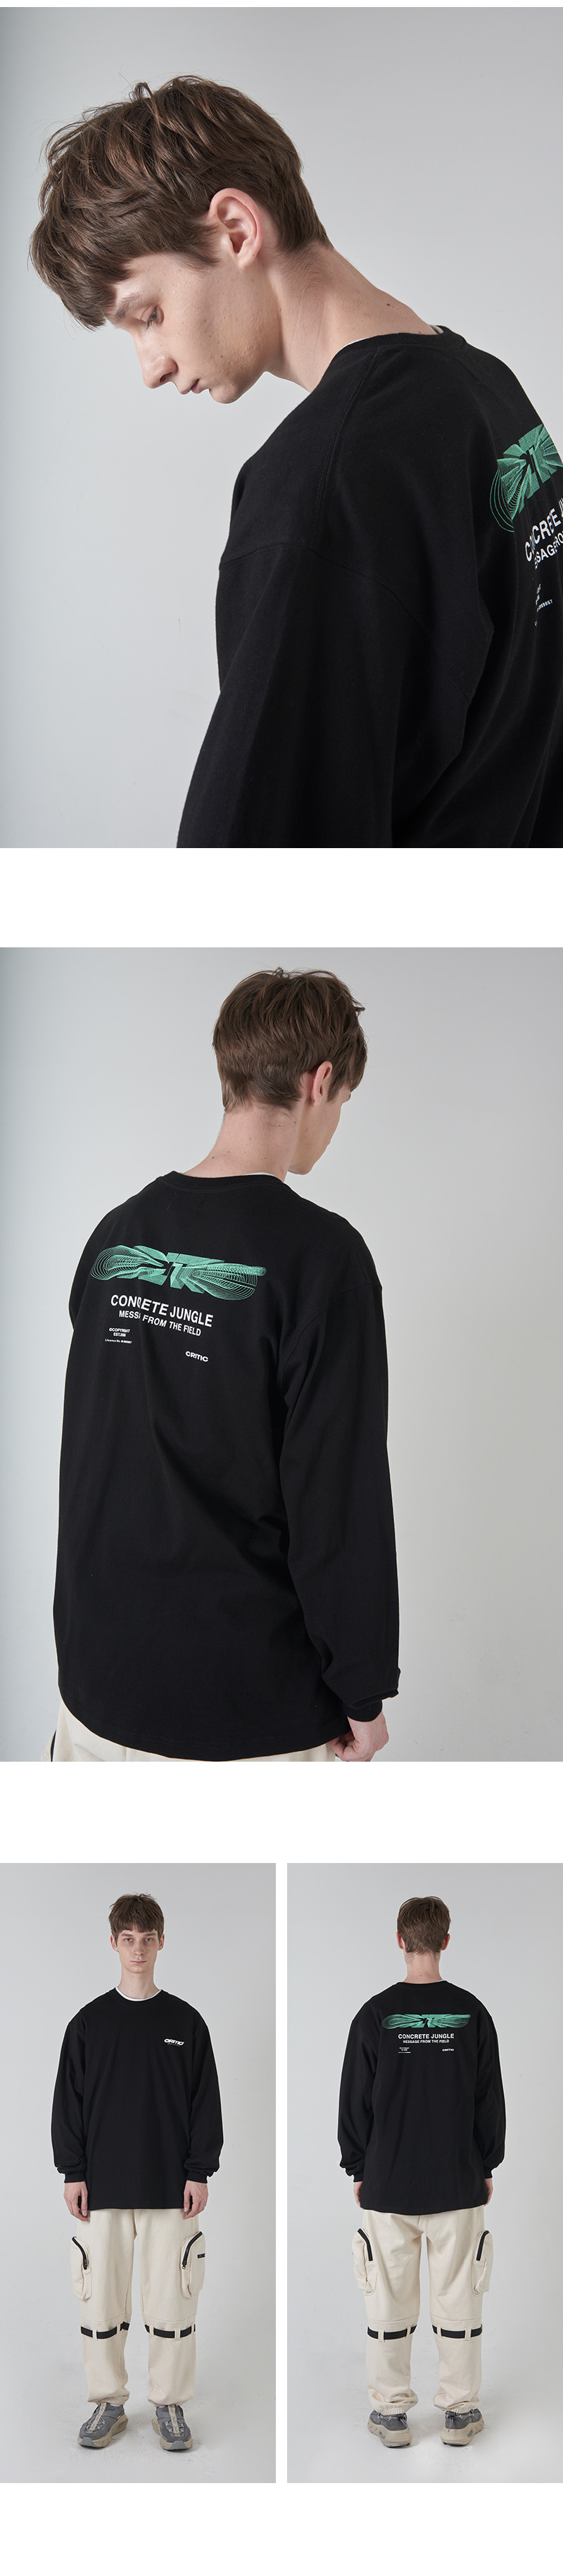 BLEND LOGO LONG SLEEVE T-SHIRT(BLACK)_CTONARL01UC6